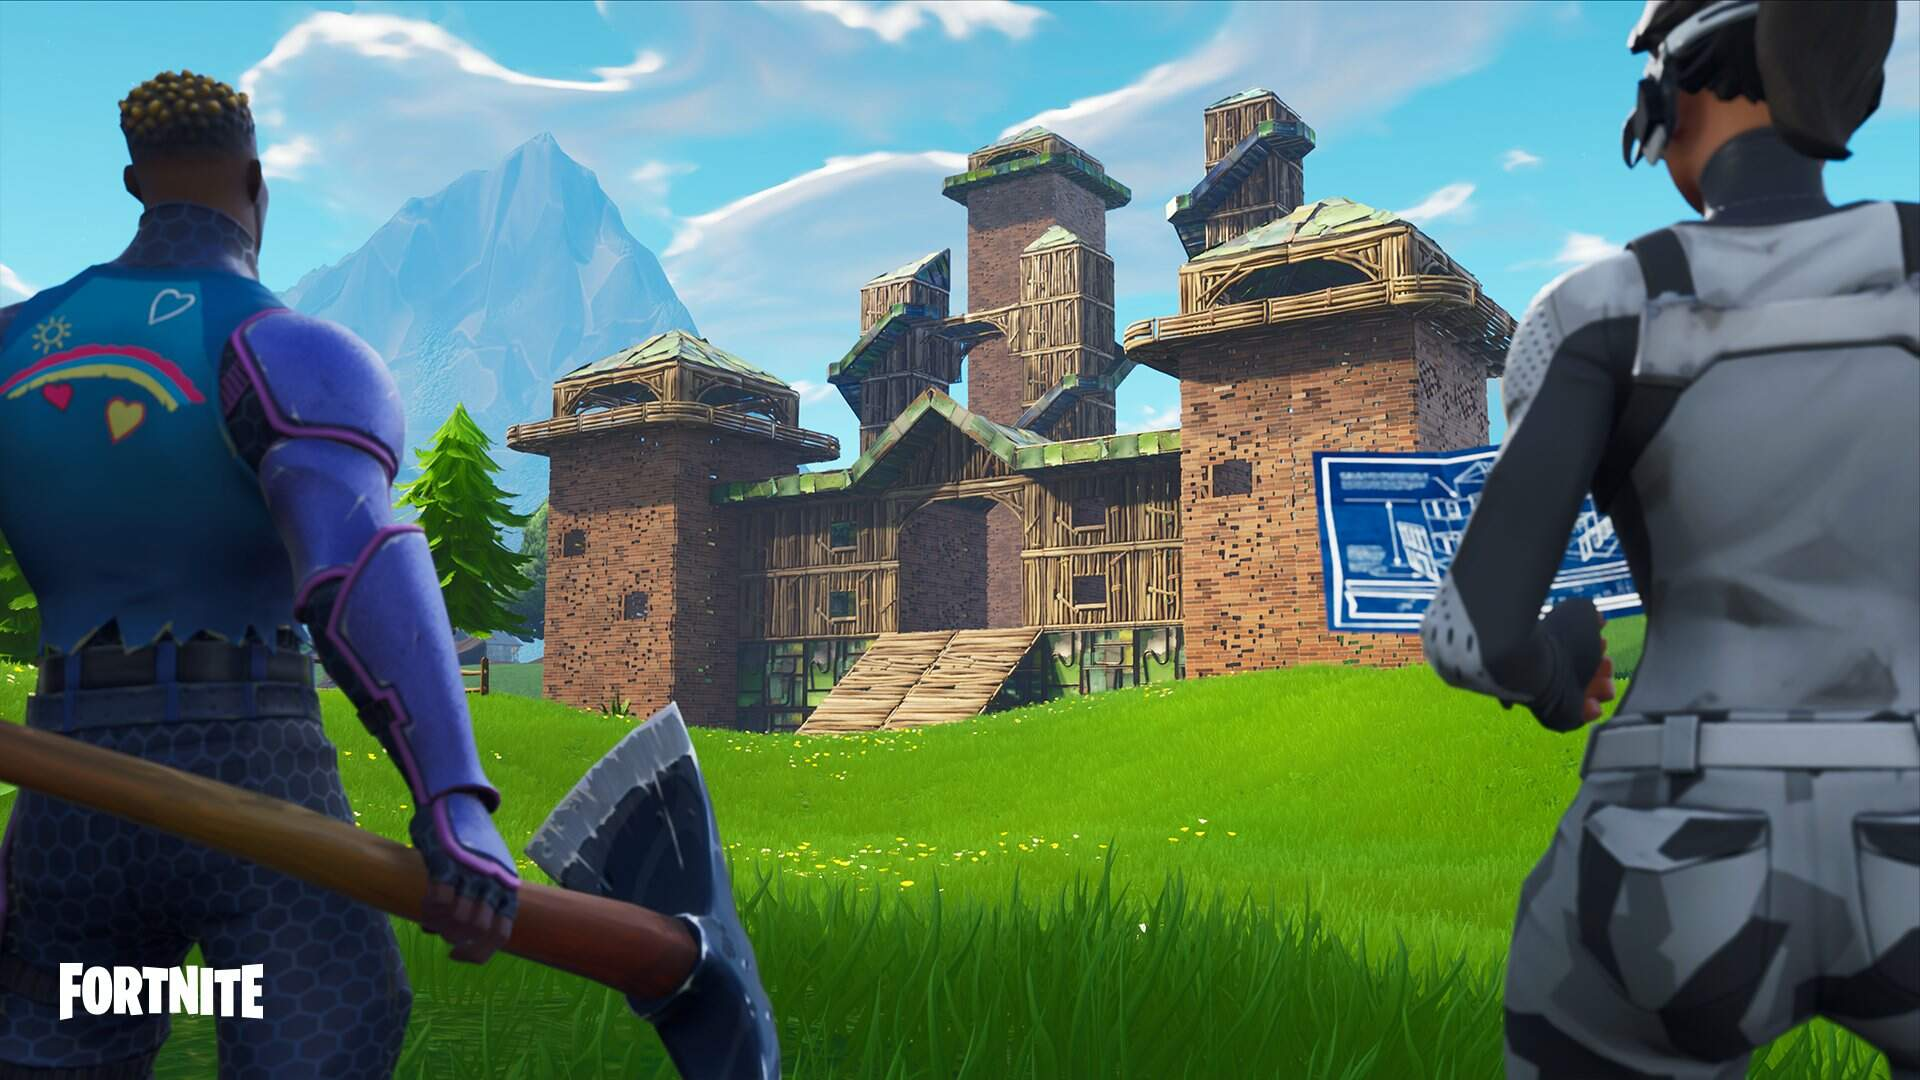 Fortnite Playground Mode will be Turned Off Next Week